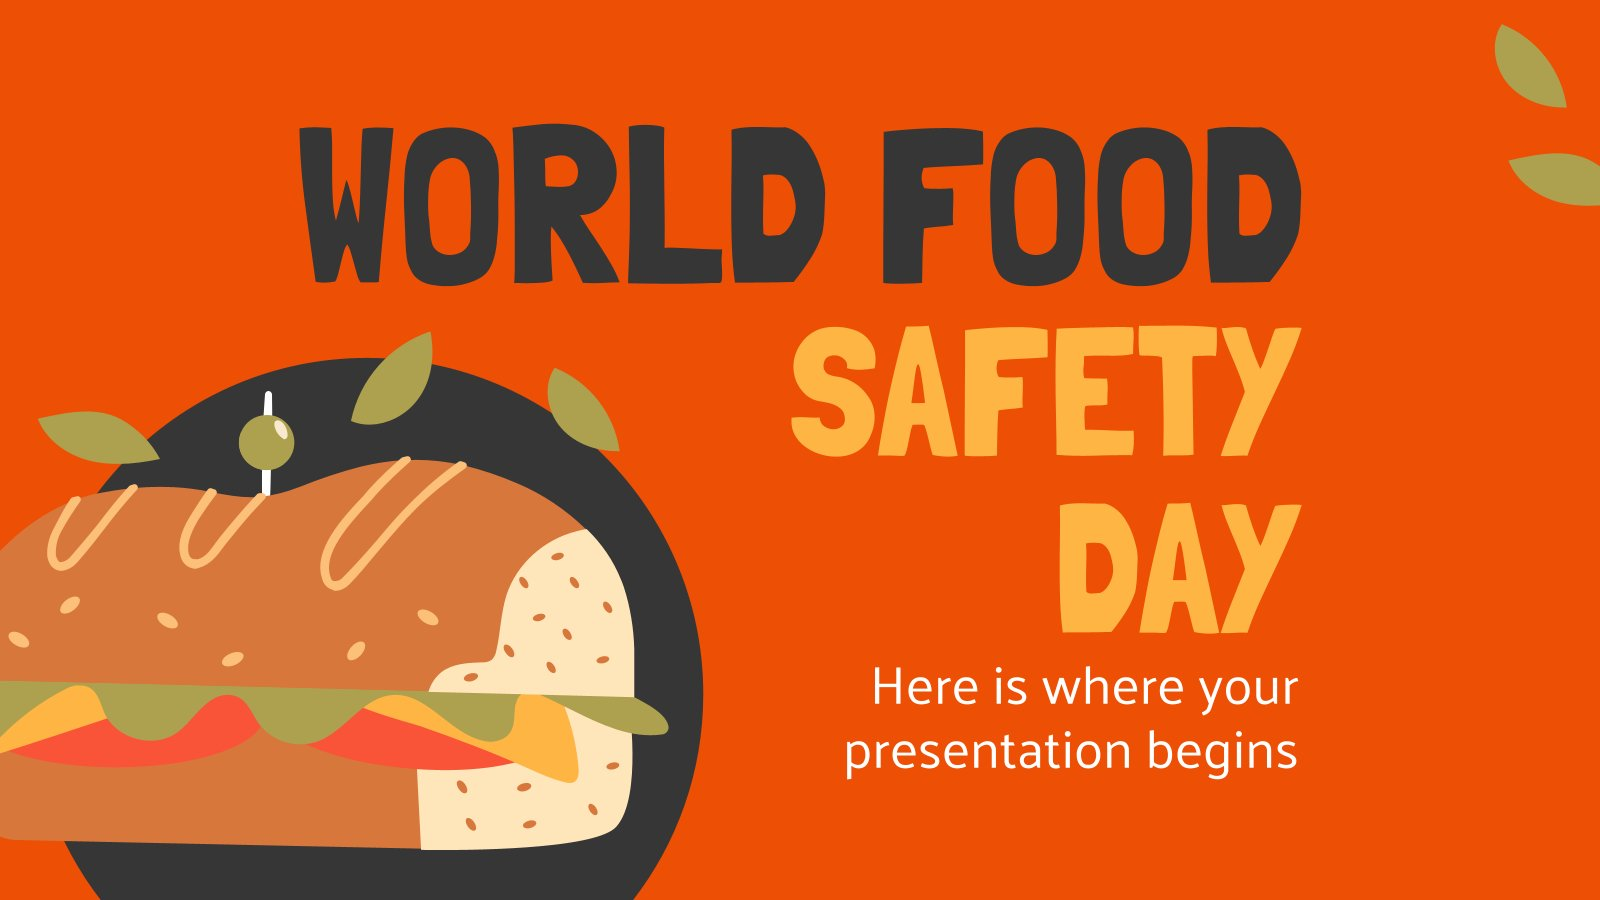 World Food Safety Day presentation template